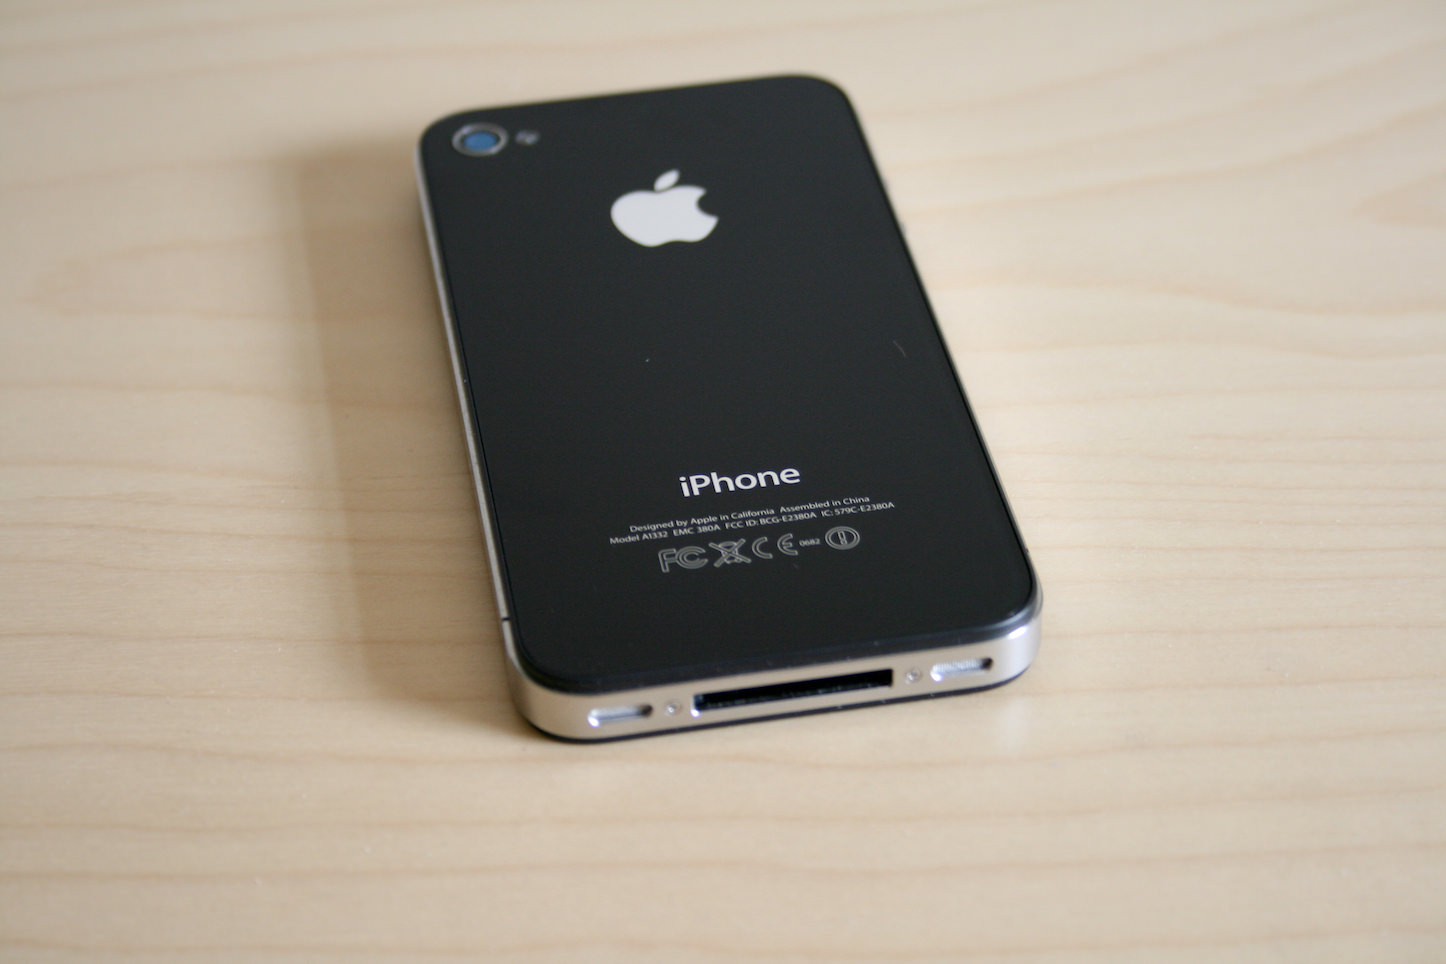 Iphone 4 becoming oboslete